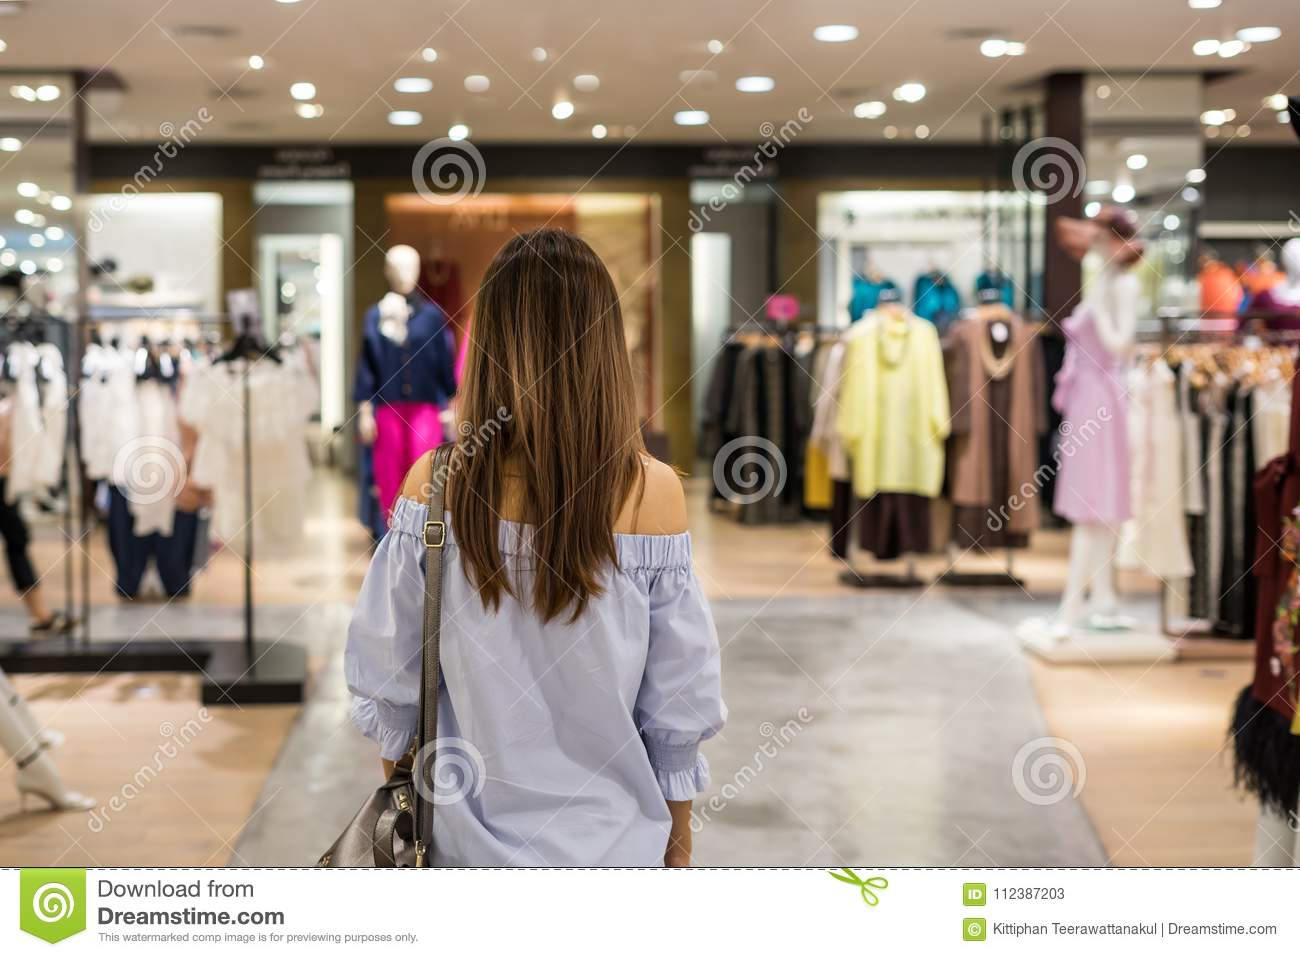 1f2a2833ac8 Young Asian Woman Walking In Clothes Store Stock Image - Image of ...